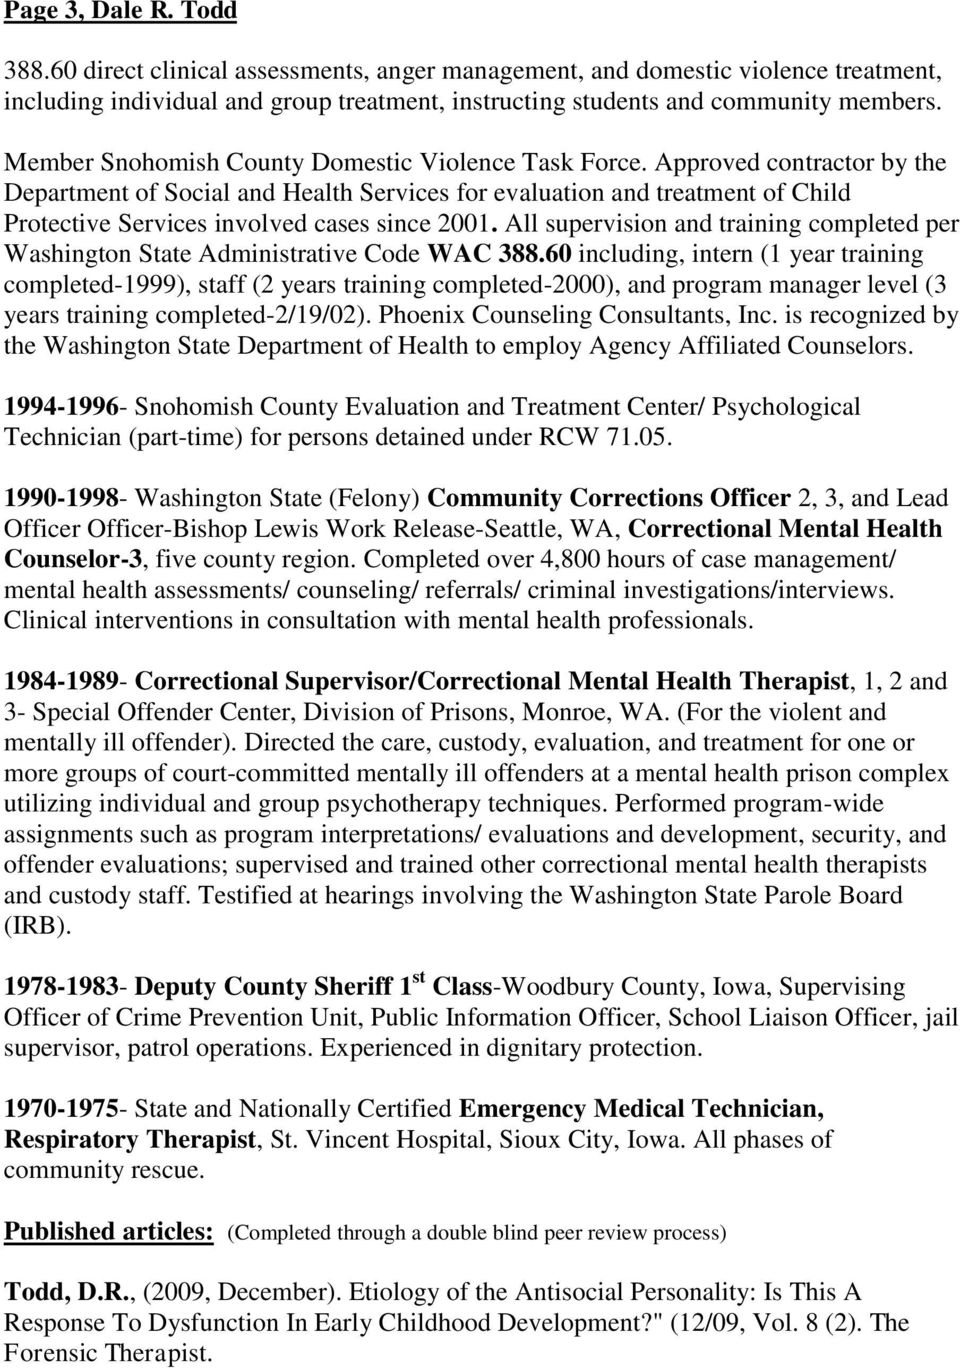 Approved contractor by the Department of Social and Health Services for evaluation and treatment of Child Protective Services involved cases since 2001.